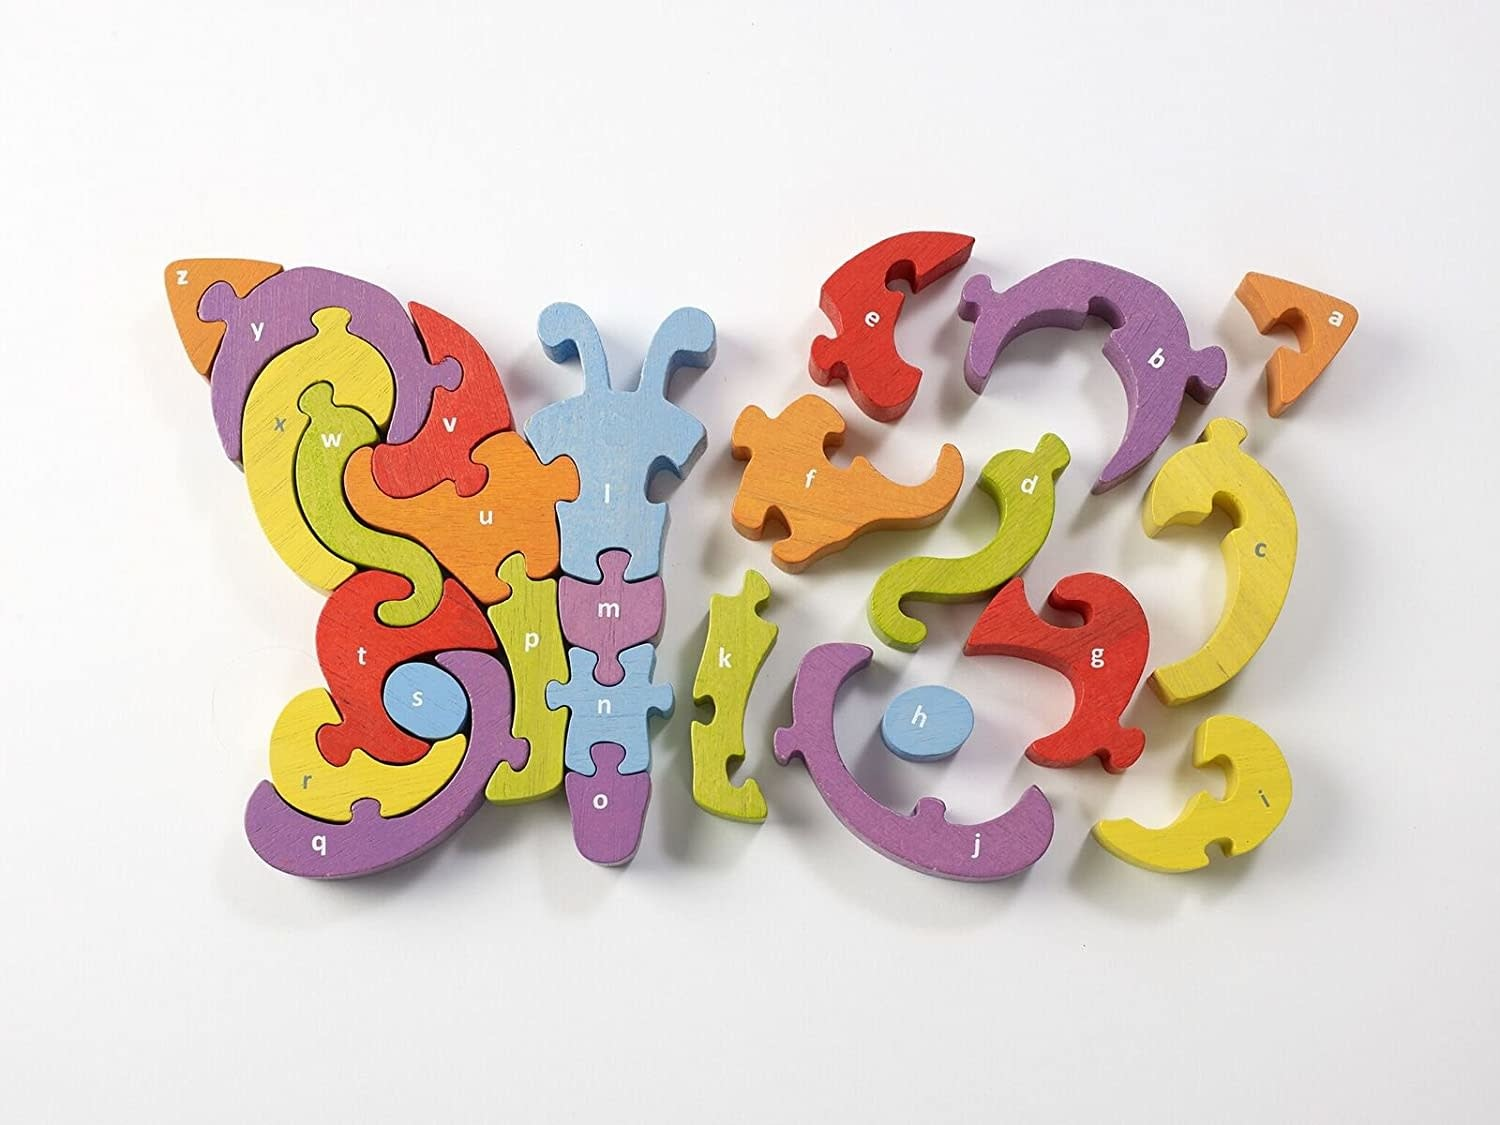 Butterfly A to Z Wooden Puzzle by BeginAgain